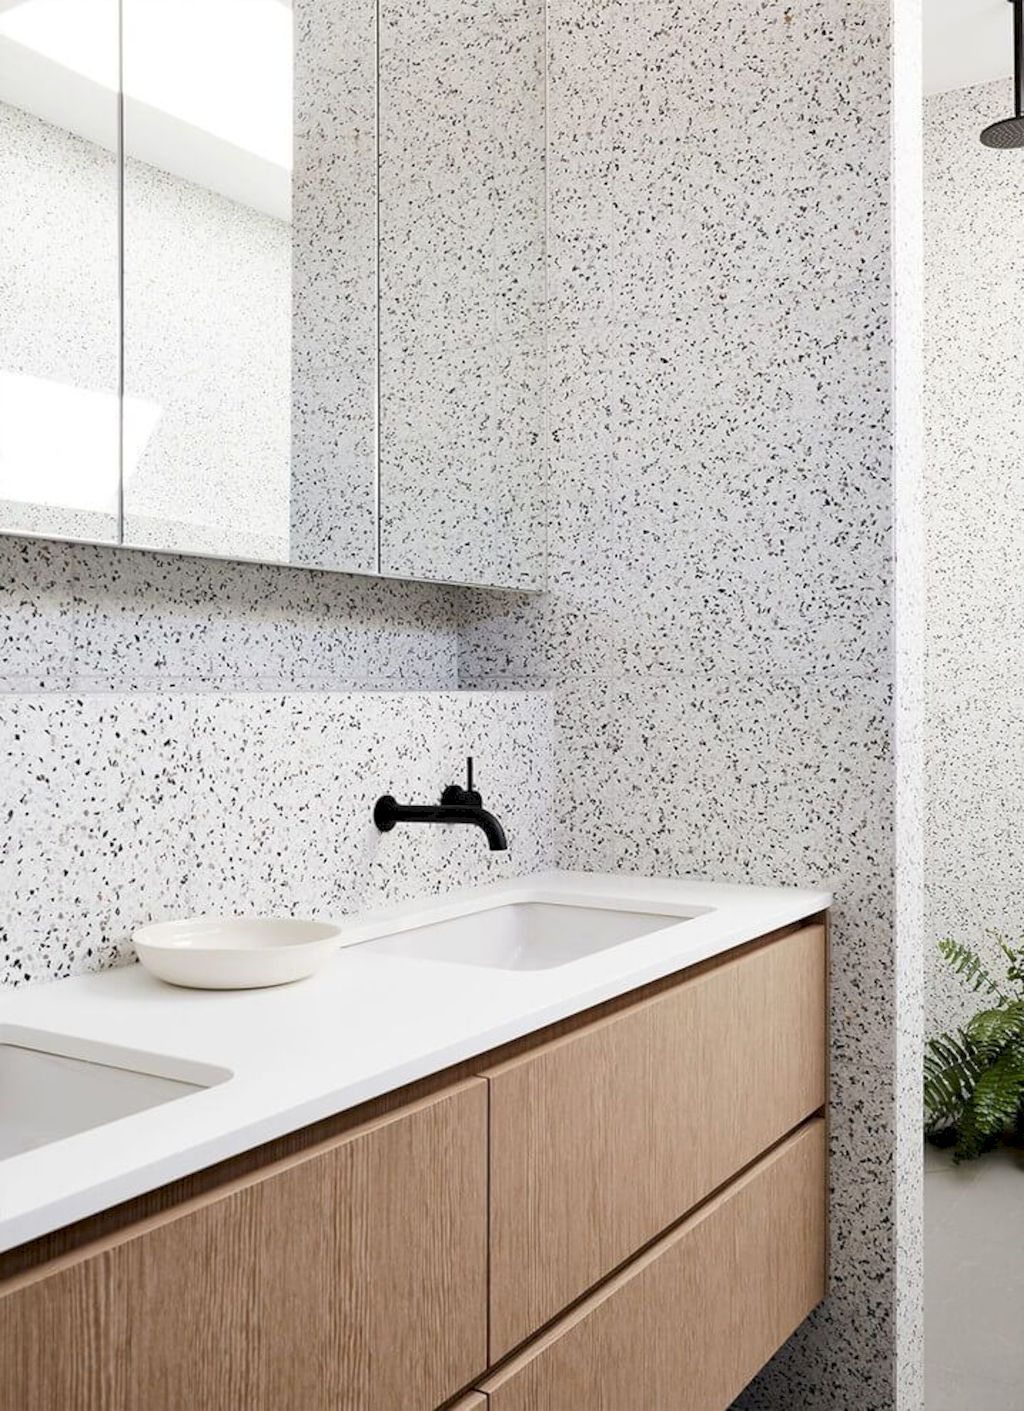 Terrazzo tiles used in bathroom renovation showing classical comeback that bring an artistic retro statement in your home Image 38